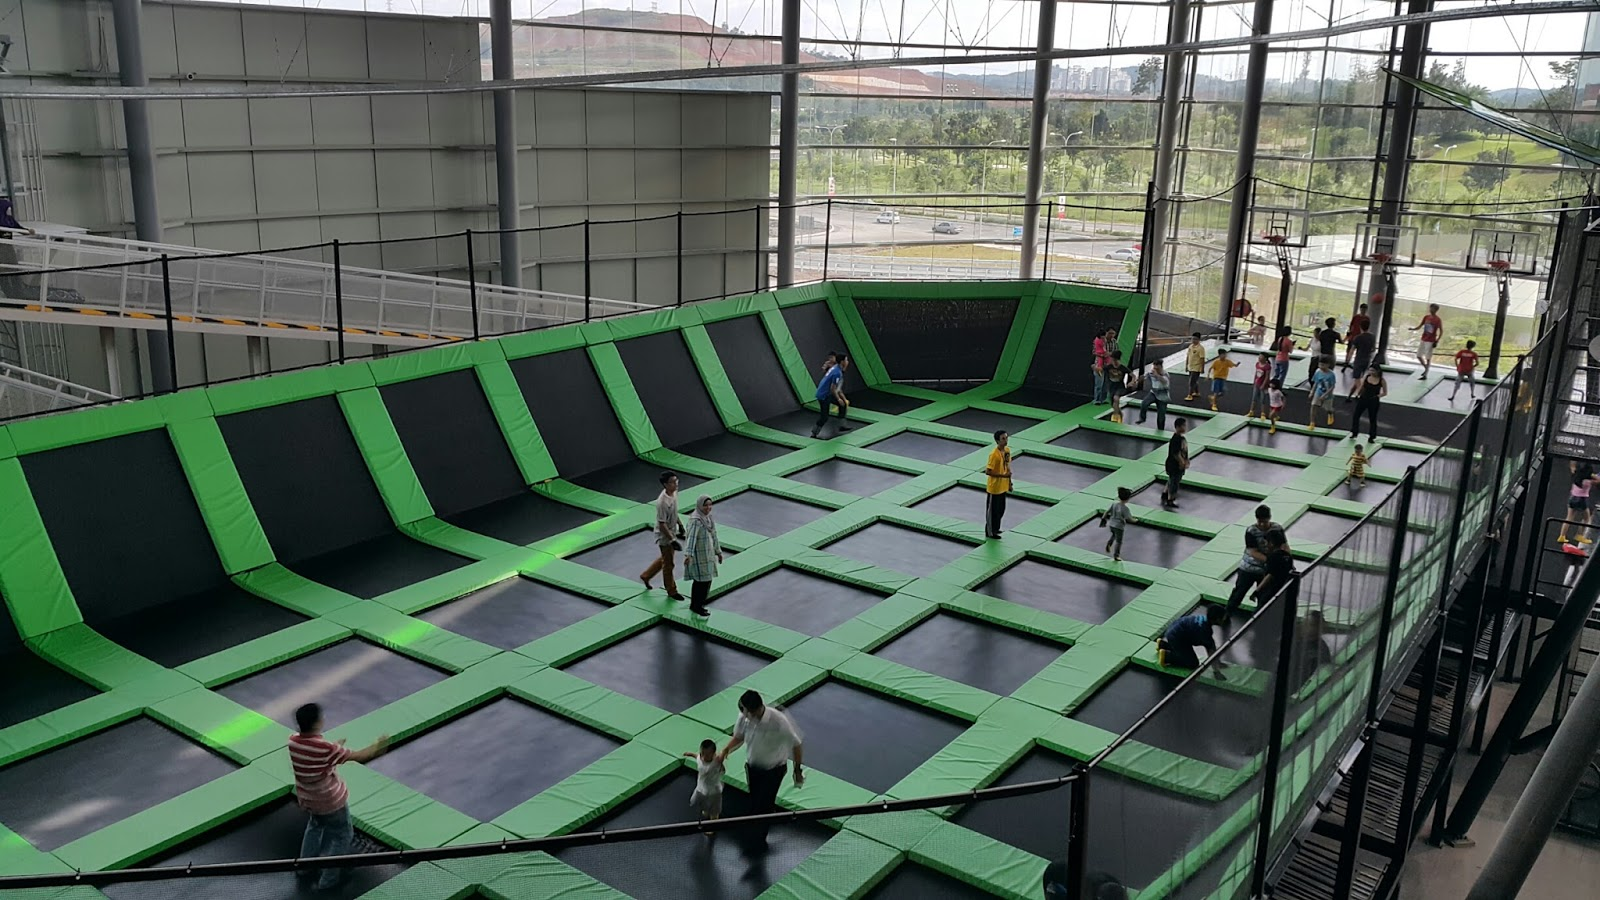 Trampoline/Launch Pad @ District 21